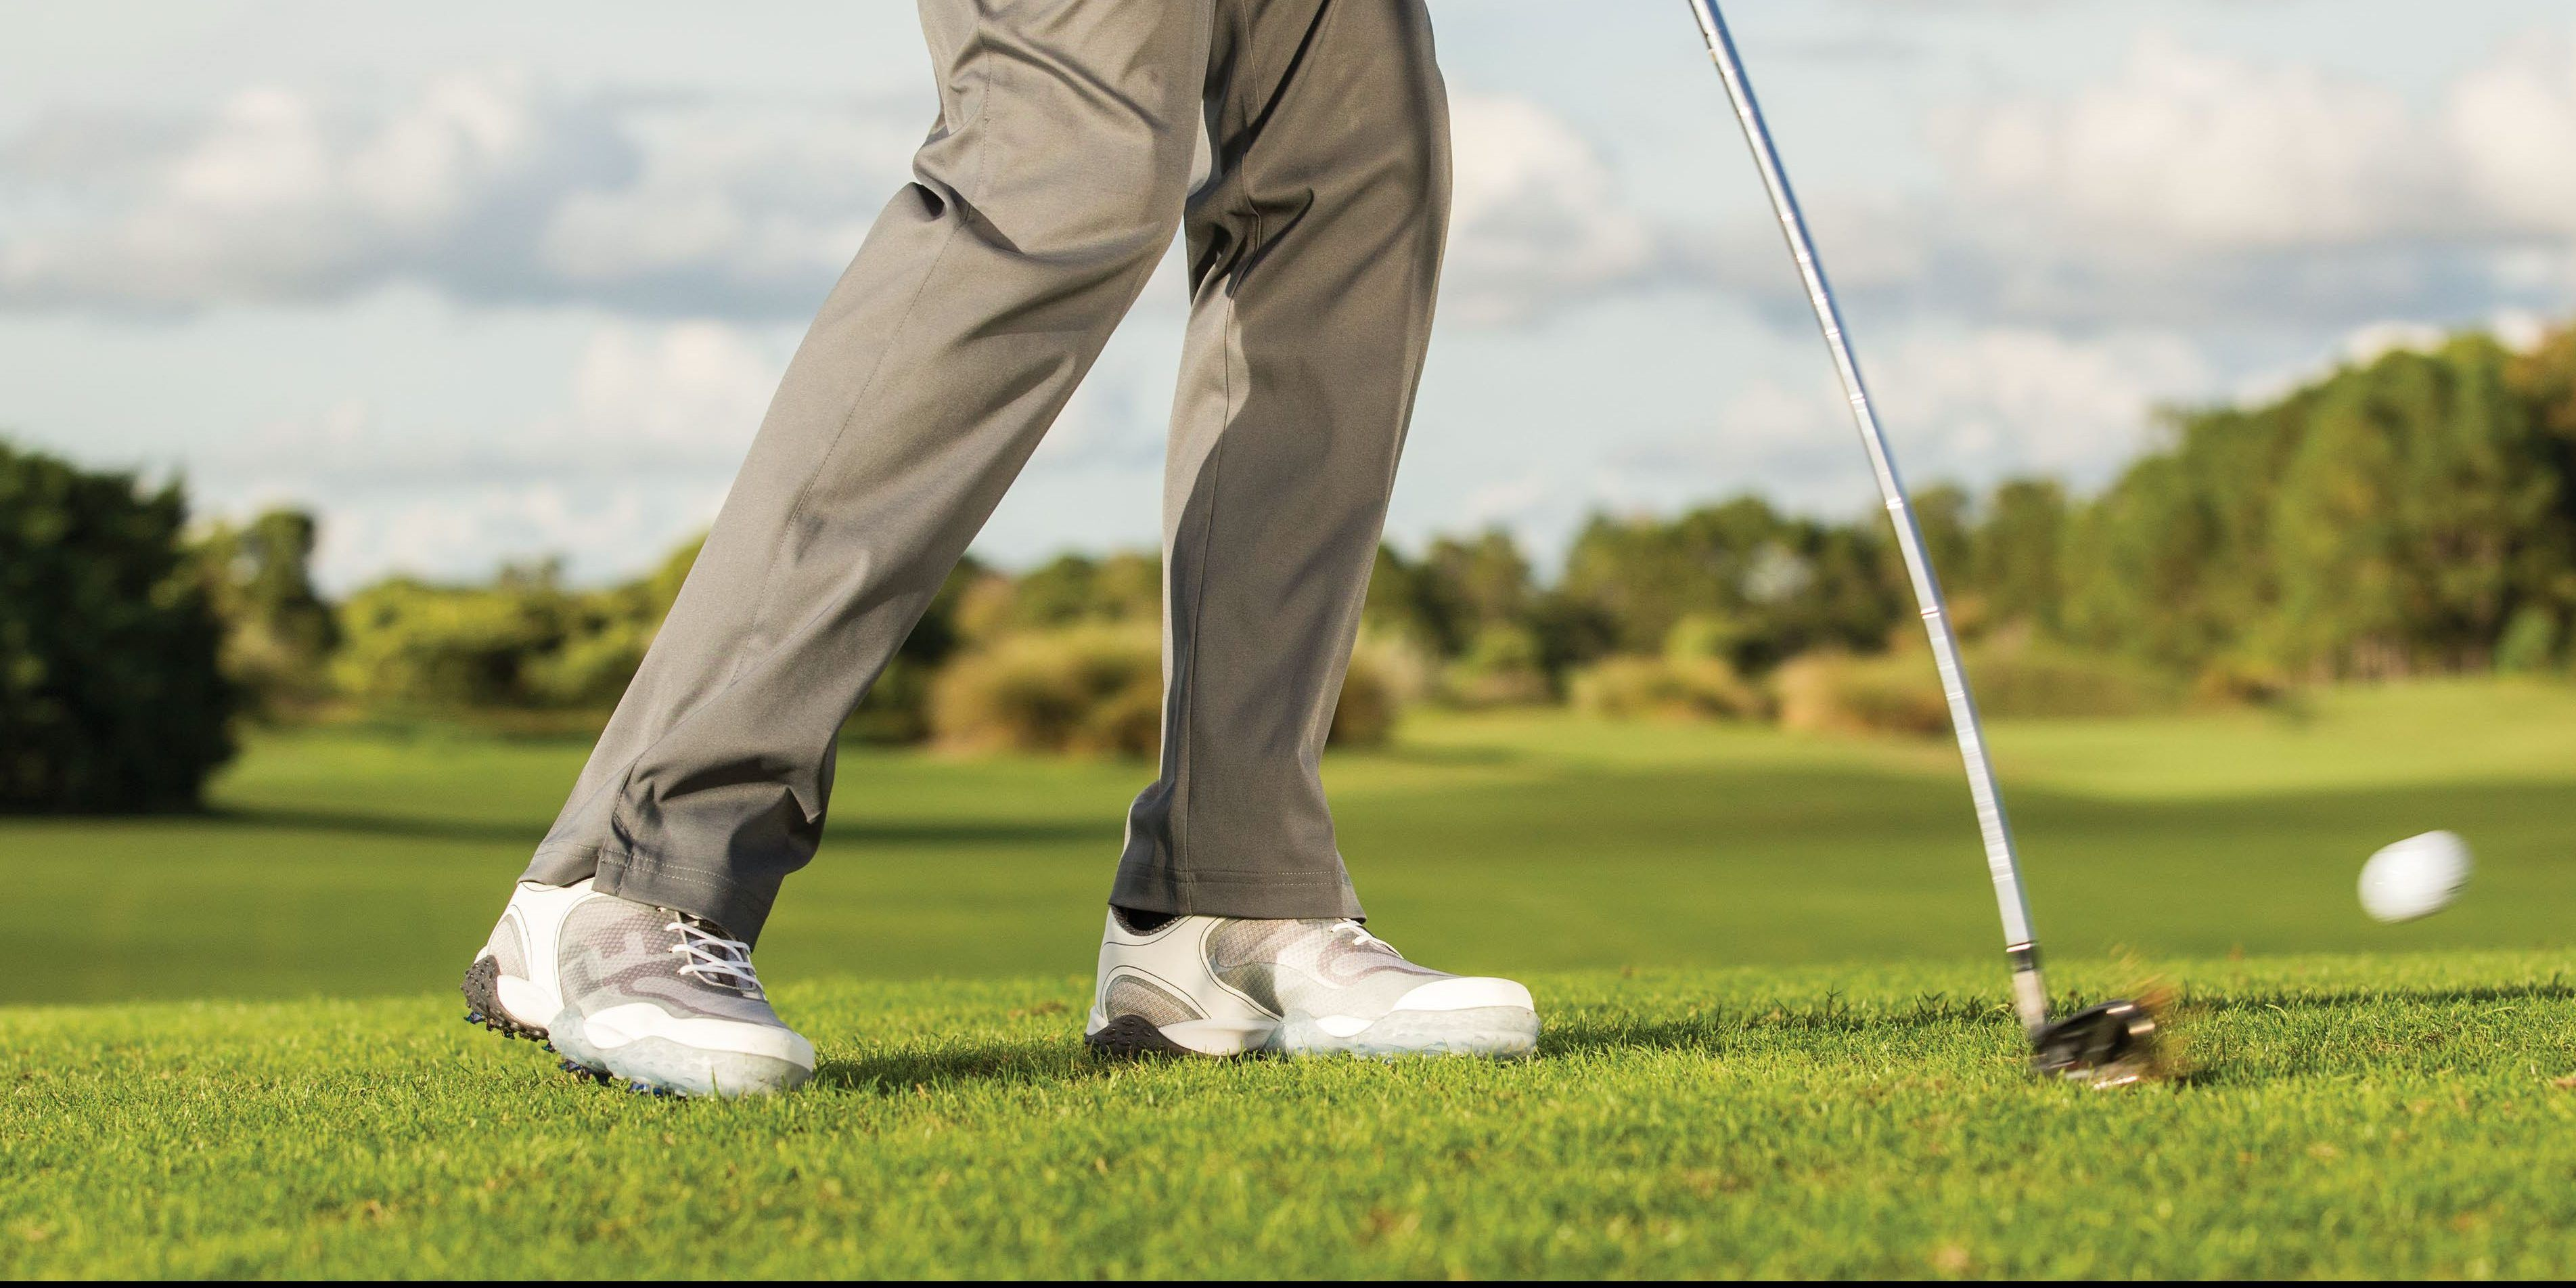 How to Clean and Maintain Golf Shoes